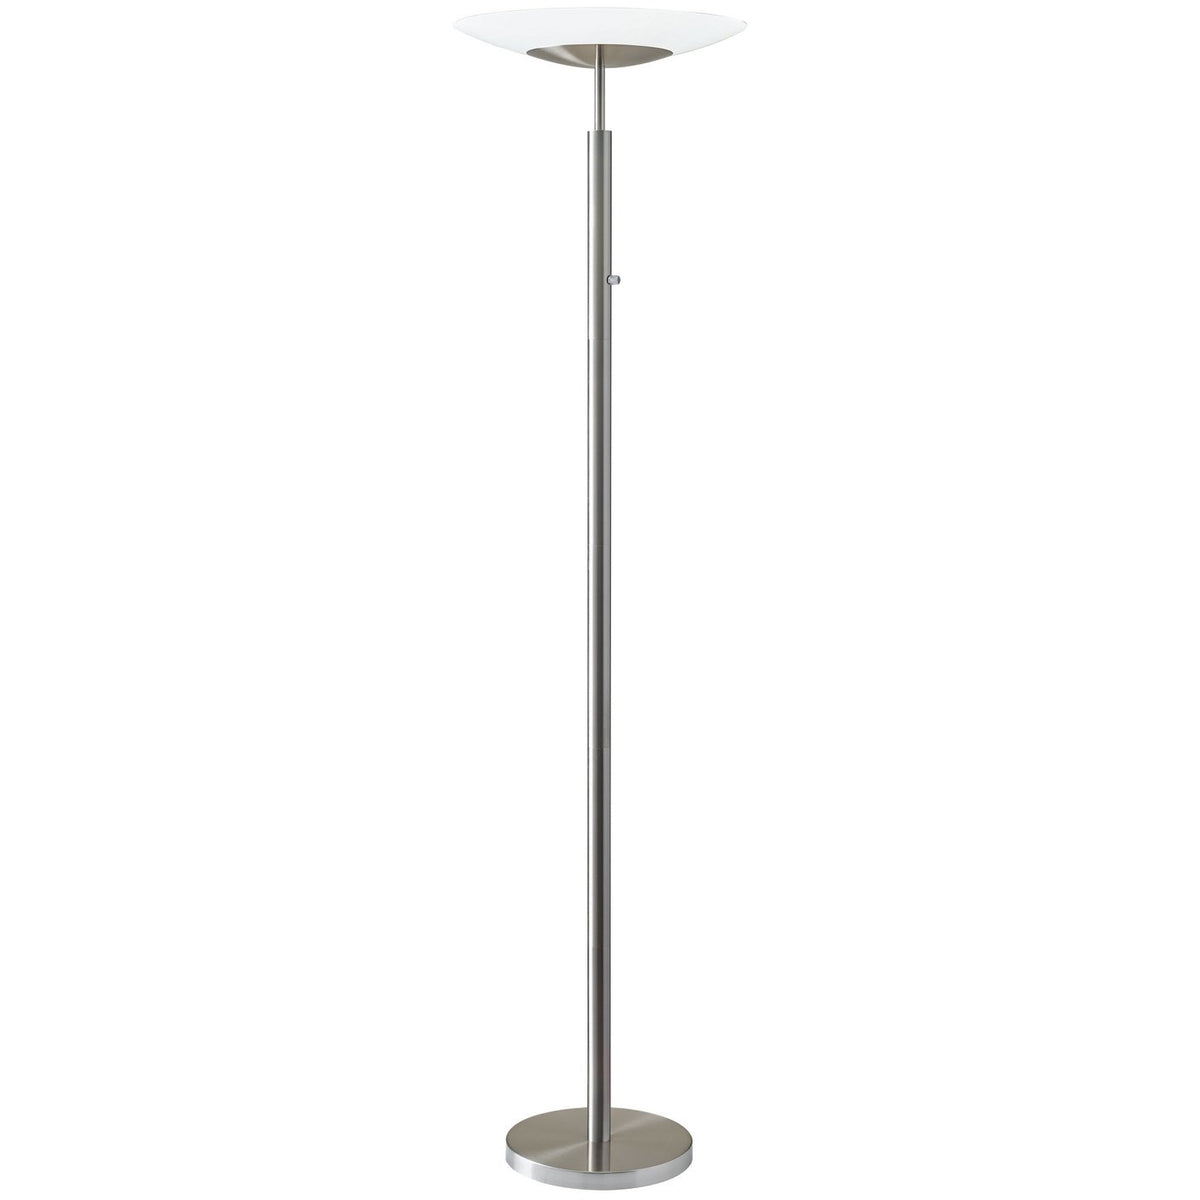 Adesso Home - 5127-22 - LED Floor Lamp - Stellar - Brushed Steel